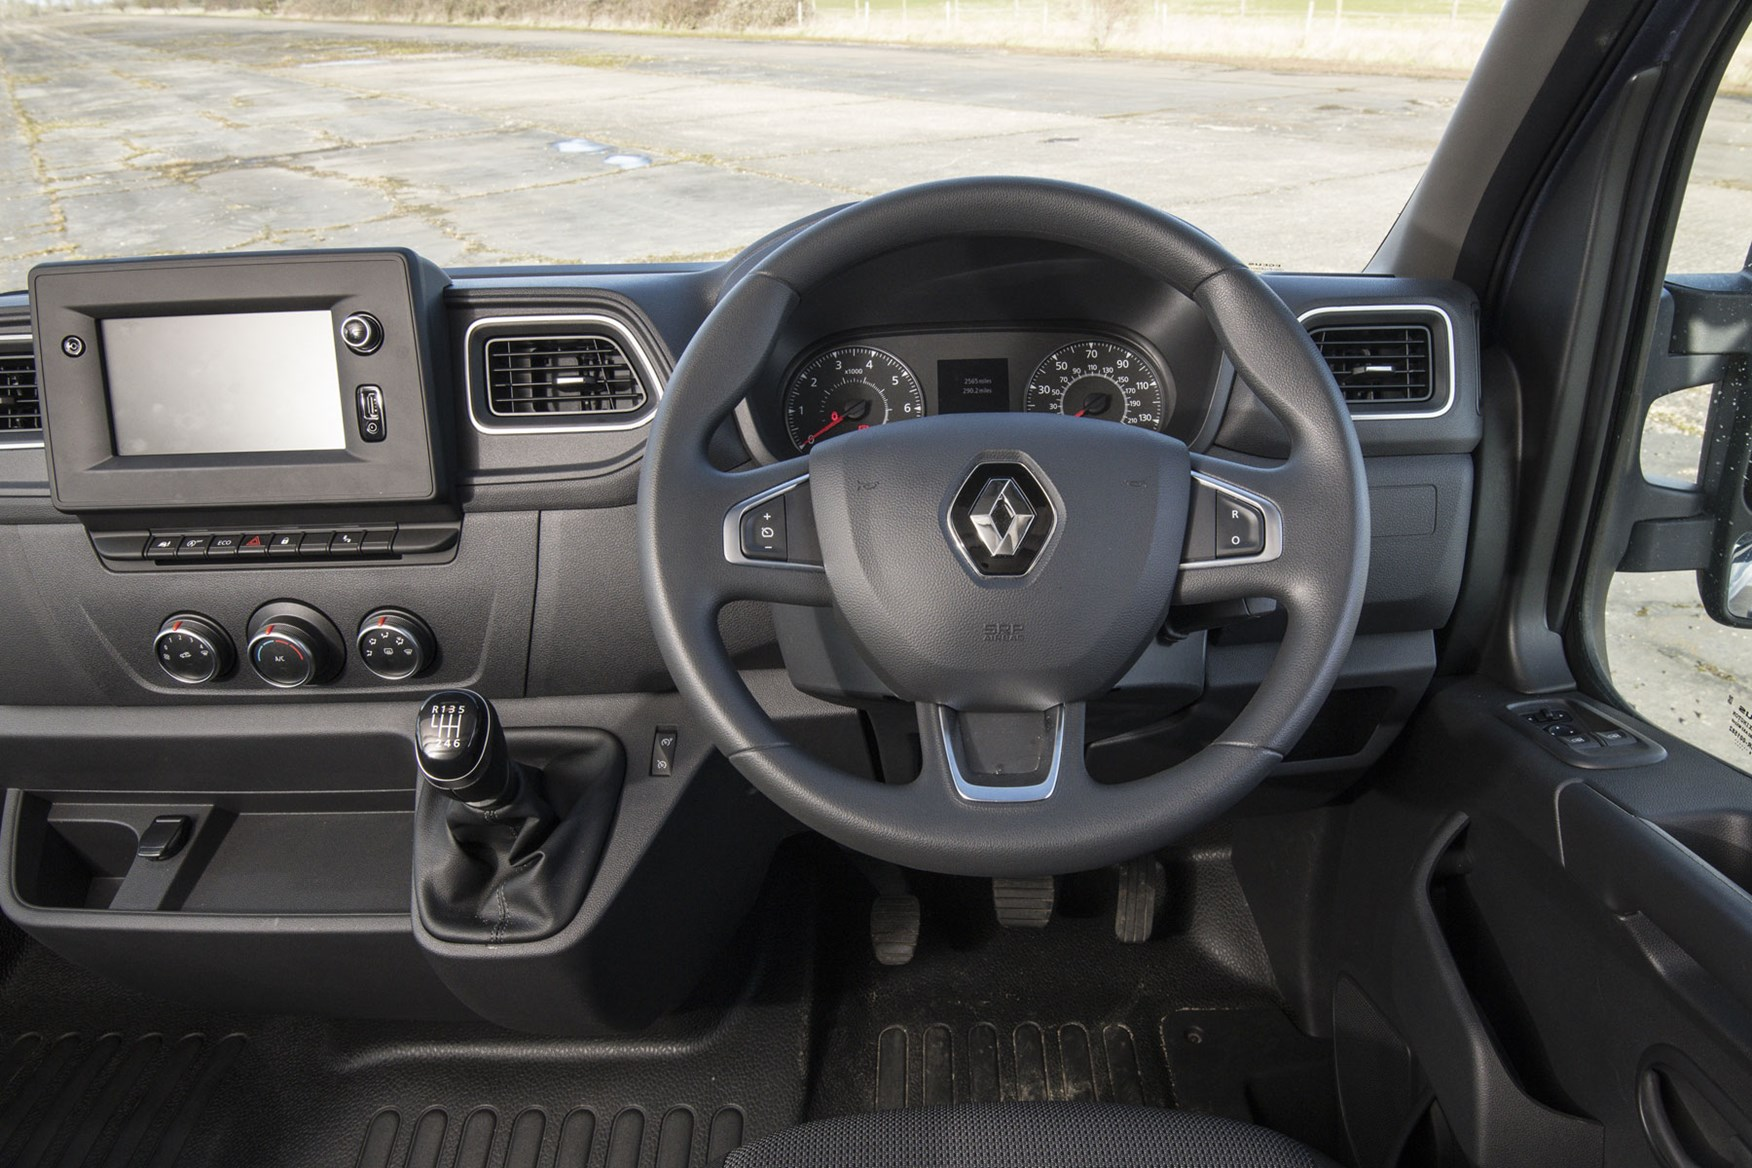 Renault Master review, updated 2019 cab interior, right-hand drive, steering wheel, instrument cluster